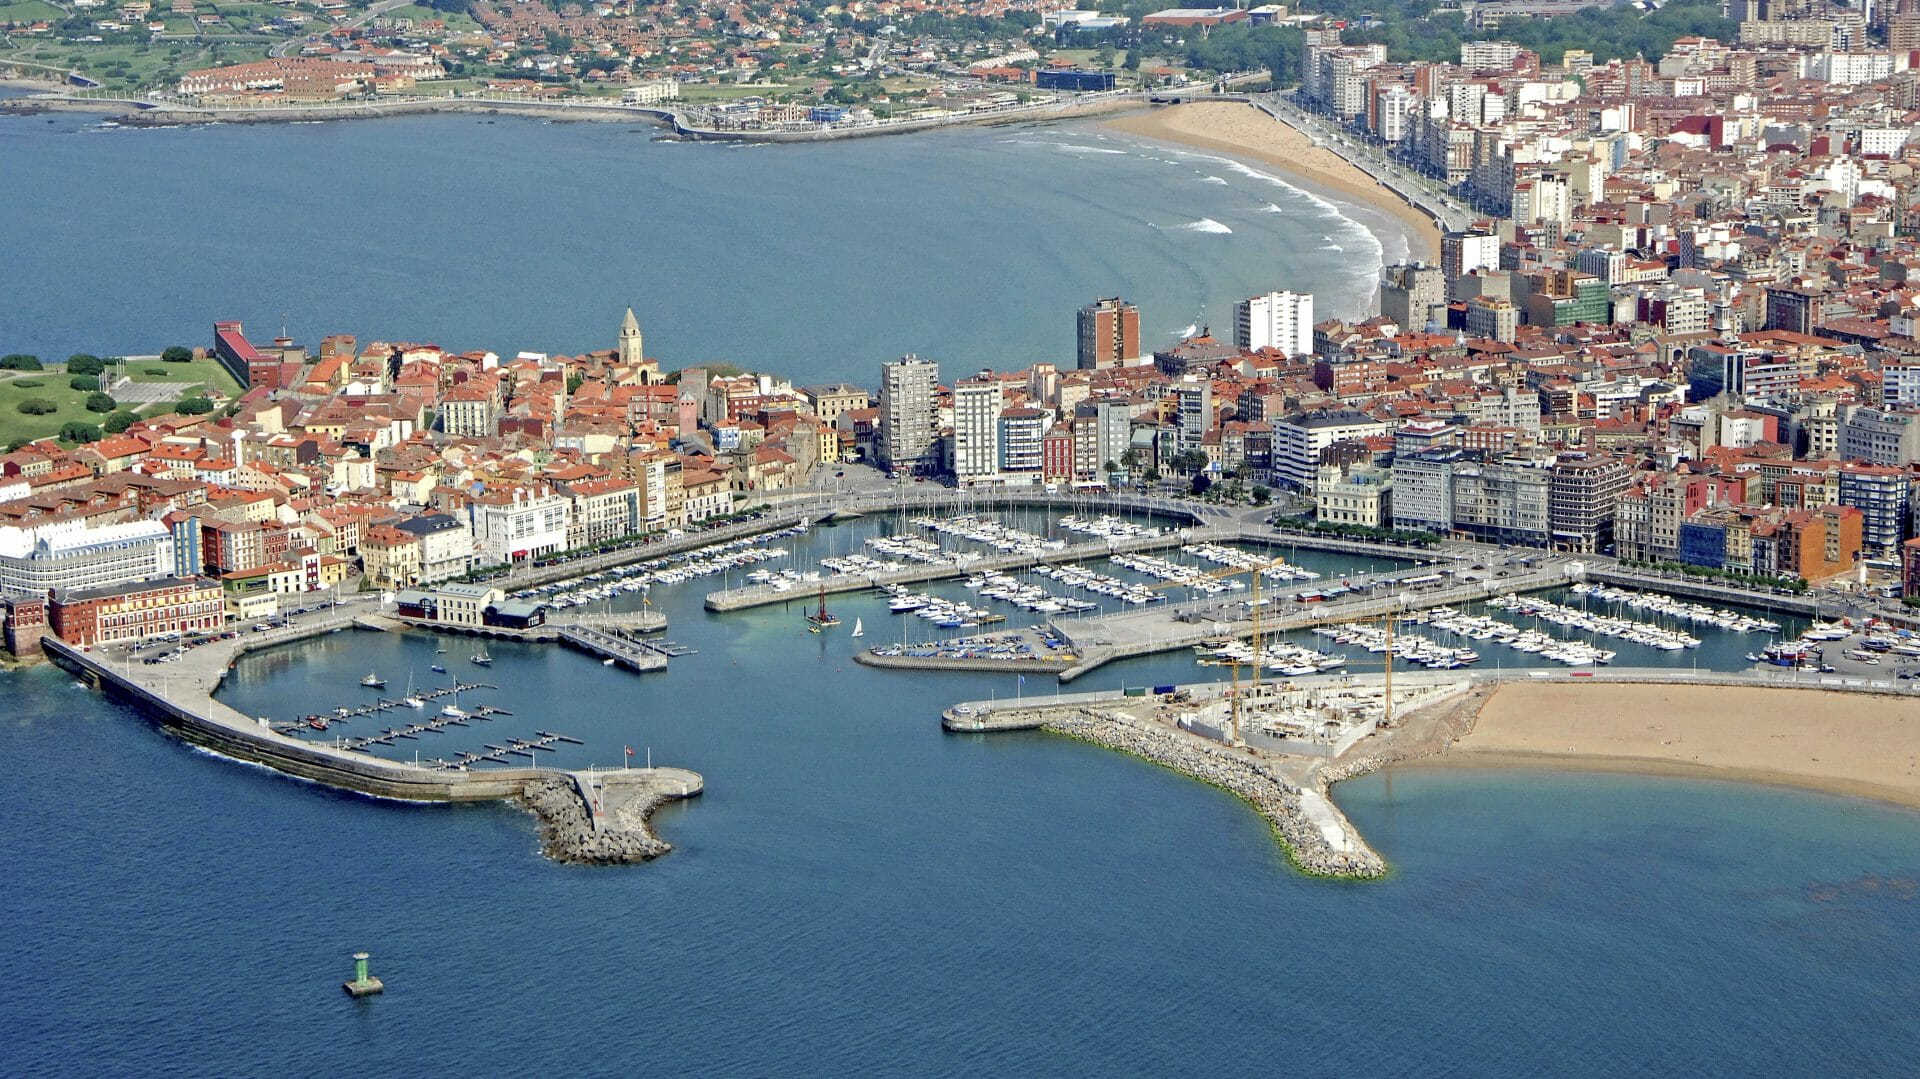 City Of Gijon Asturias Amazing Visit Tall Ship Atyla Adventure Sailing Trip Covid Free 2021